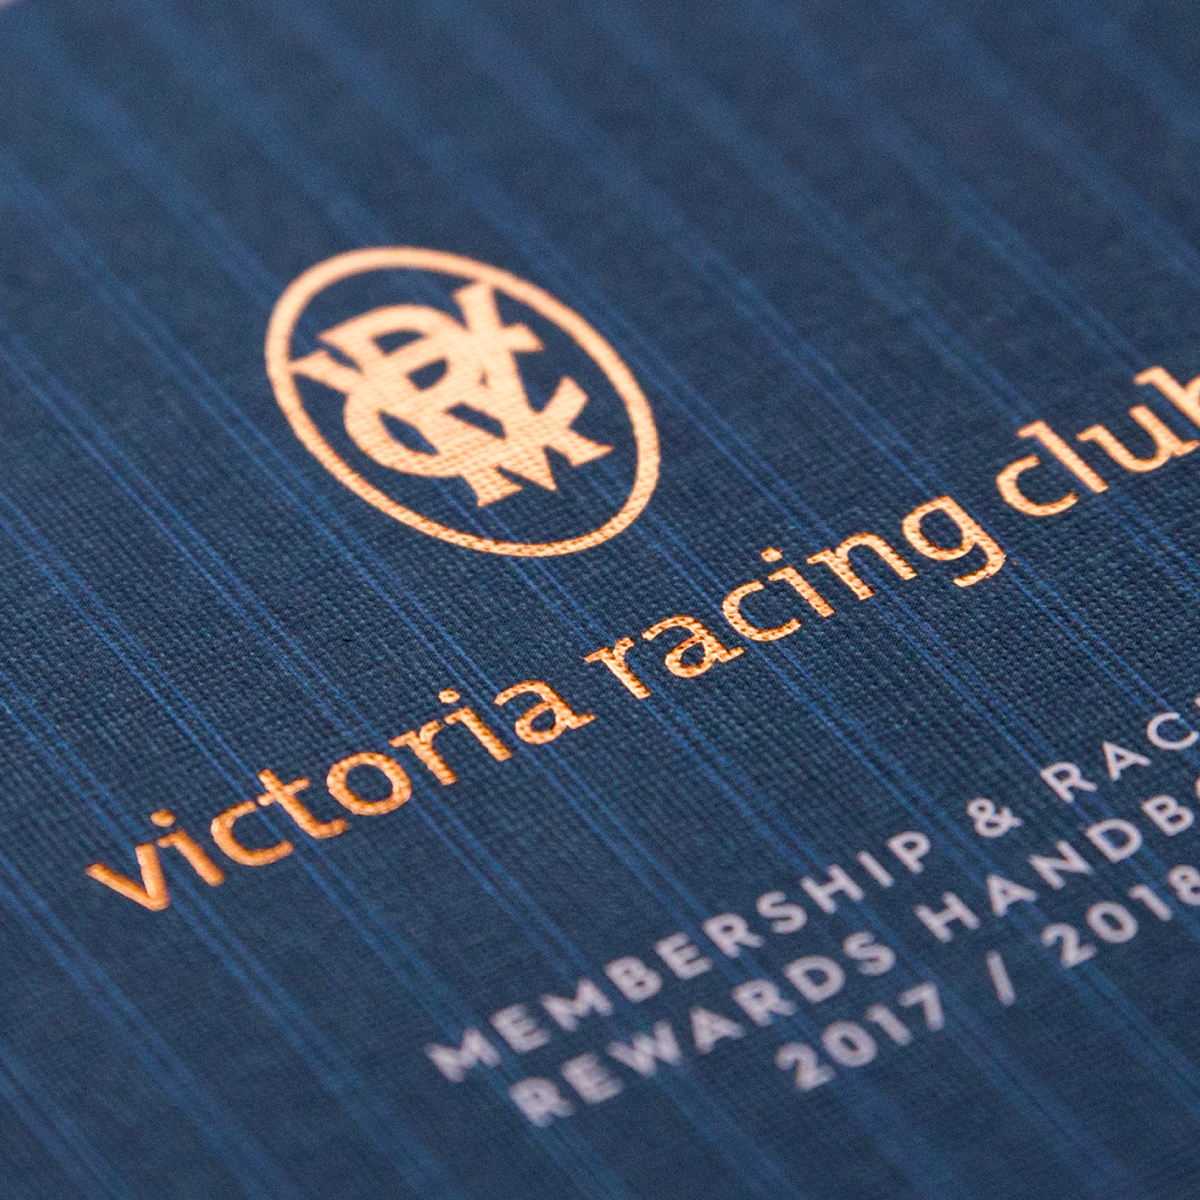 Victoria Racing Club Brand Identity Foil Stamp Logo